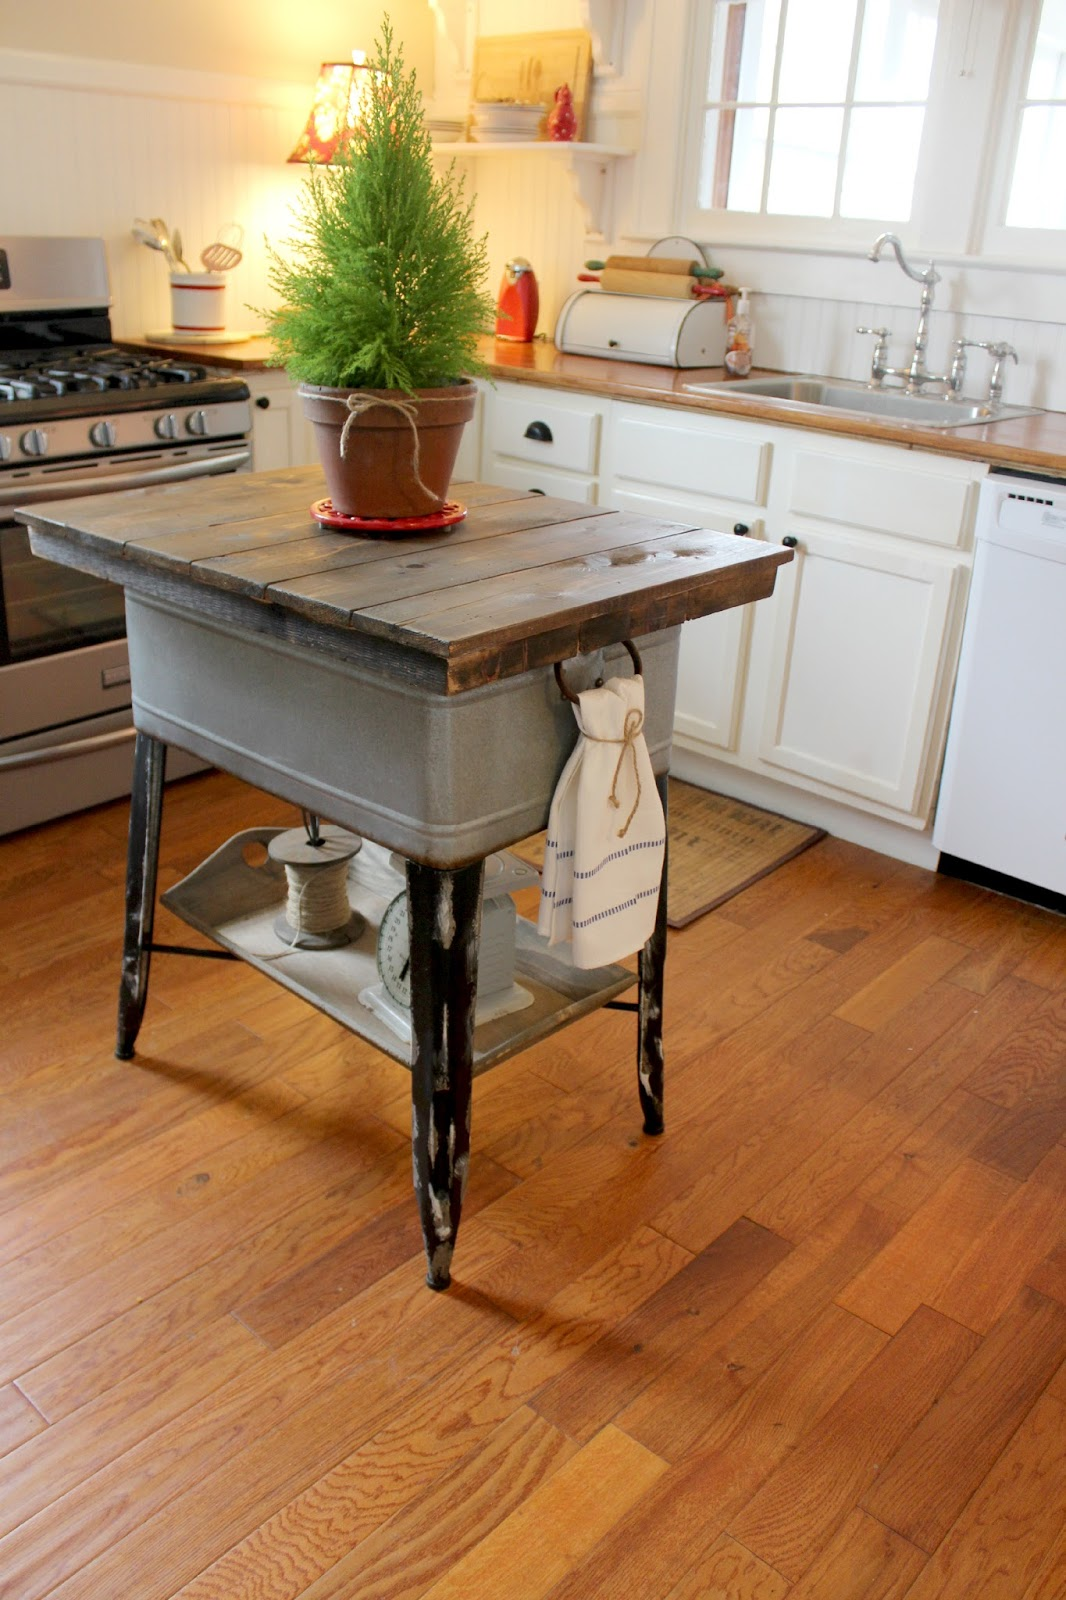 cheap kitchen countertop ideas country decorations 14 genius ways to repurpose galvanized buckets and tubs